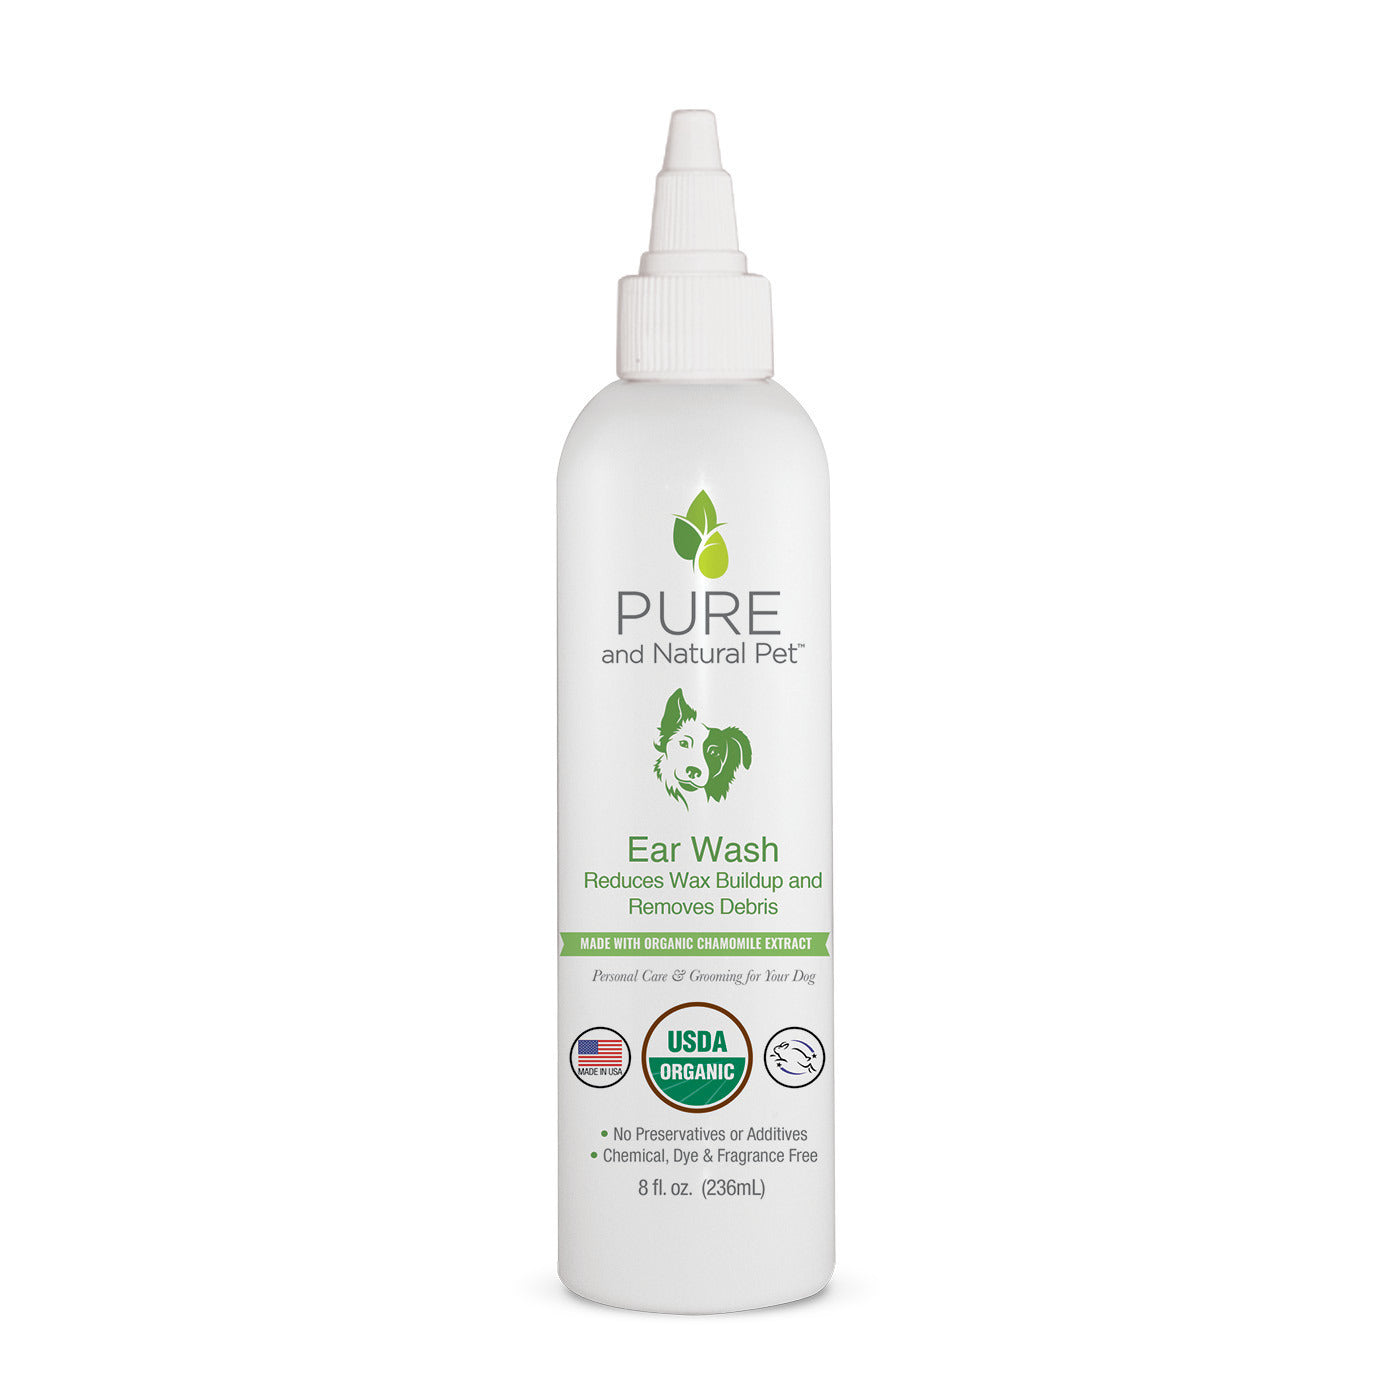 Pure and Natural Pet Ear Wash